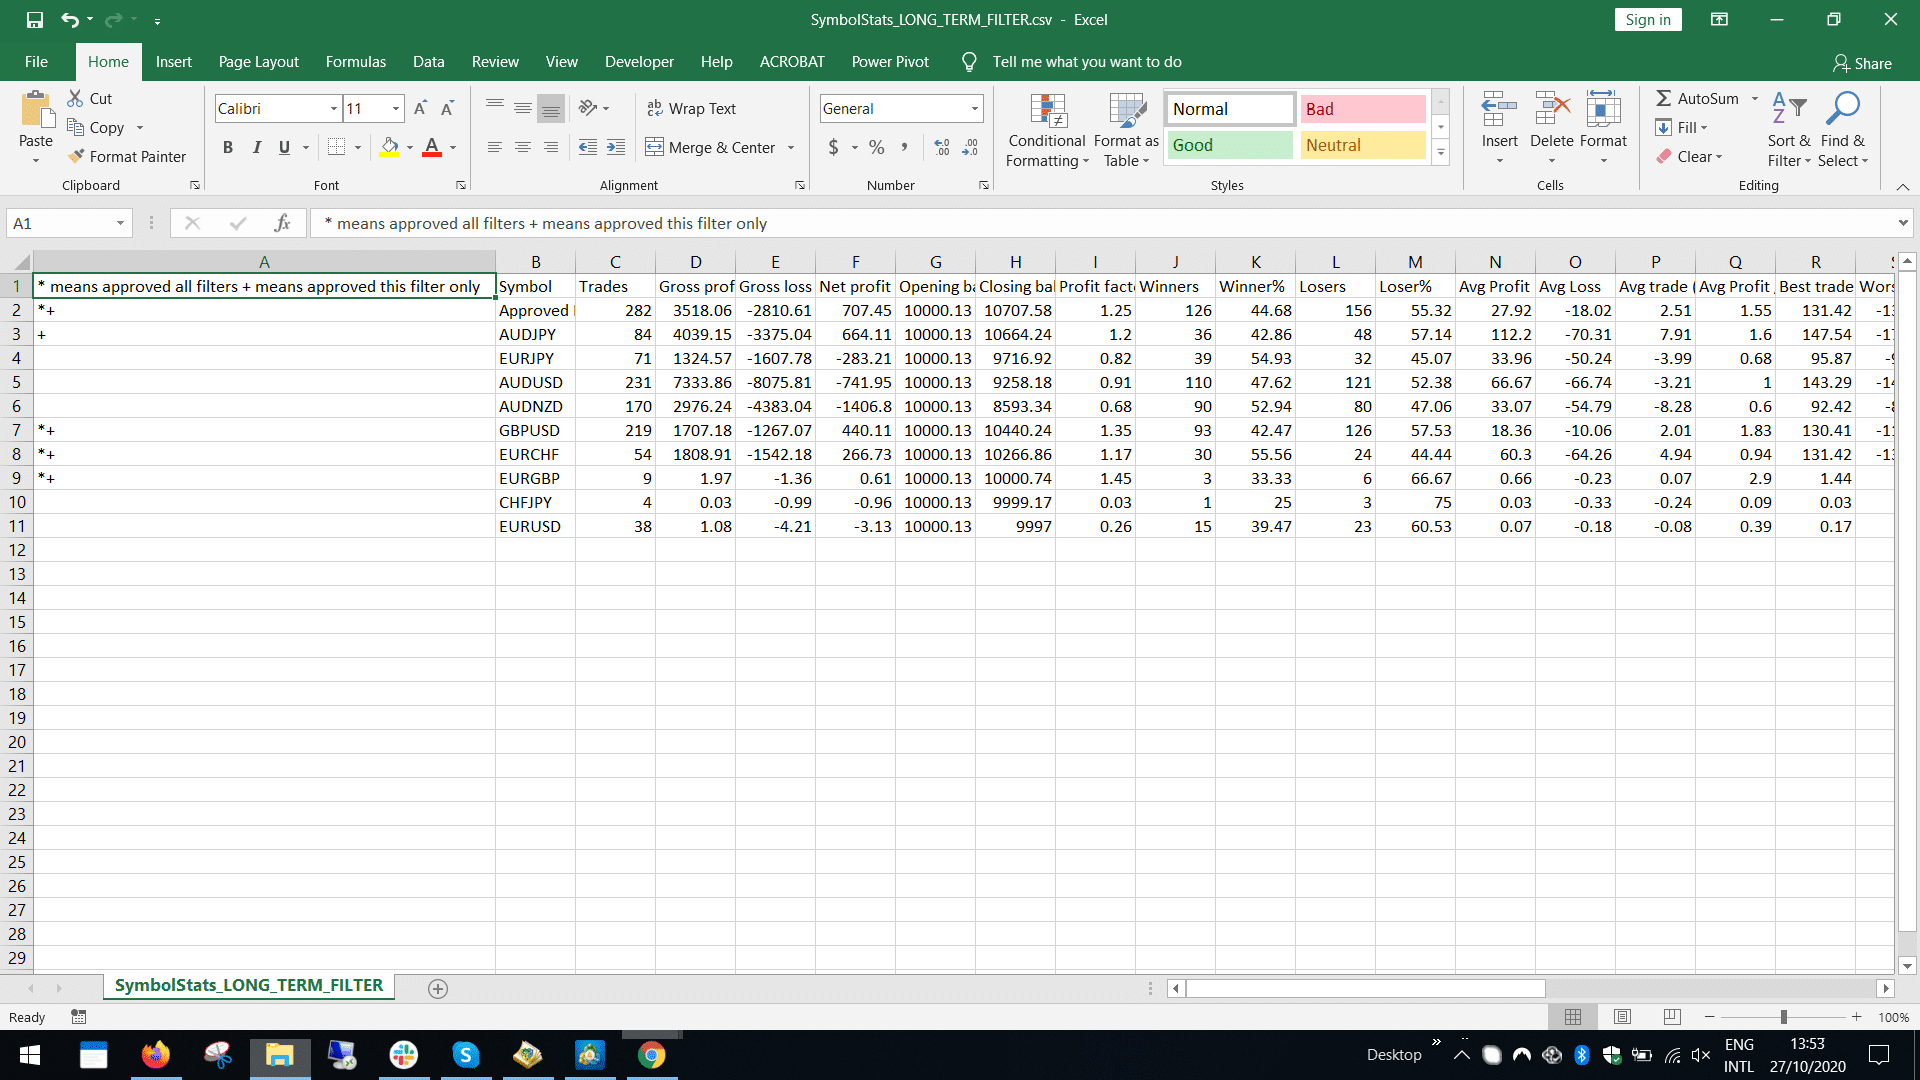 Strategy Samurai outputted long term symbol filter file for analysis